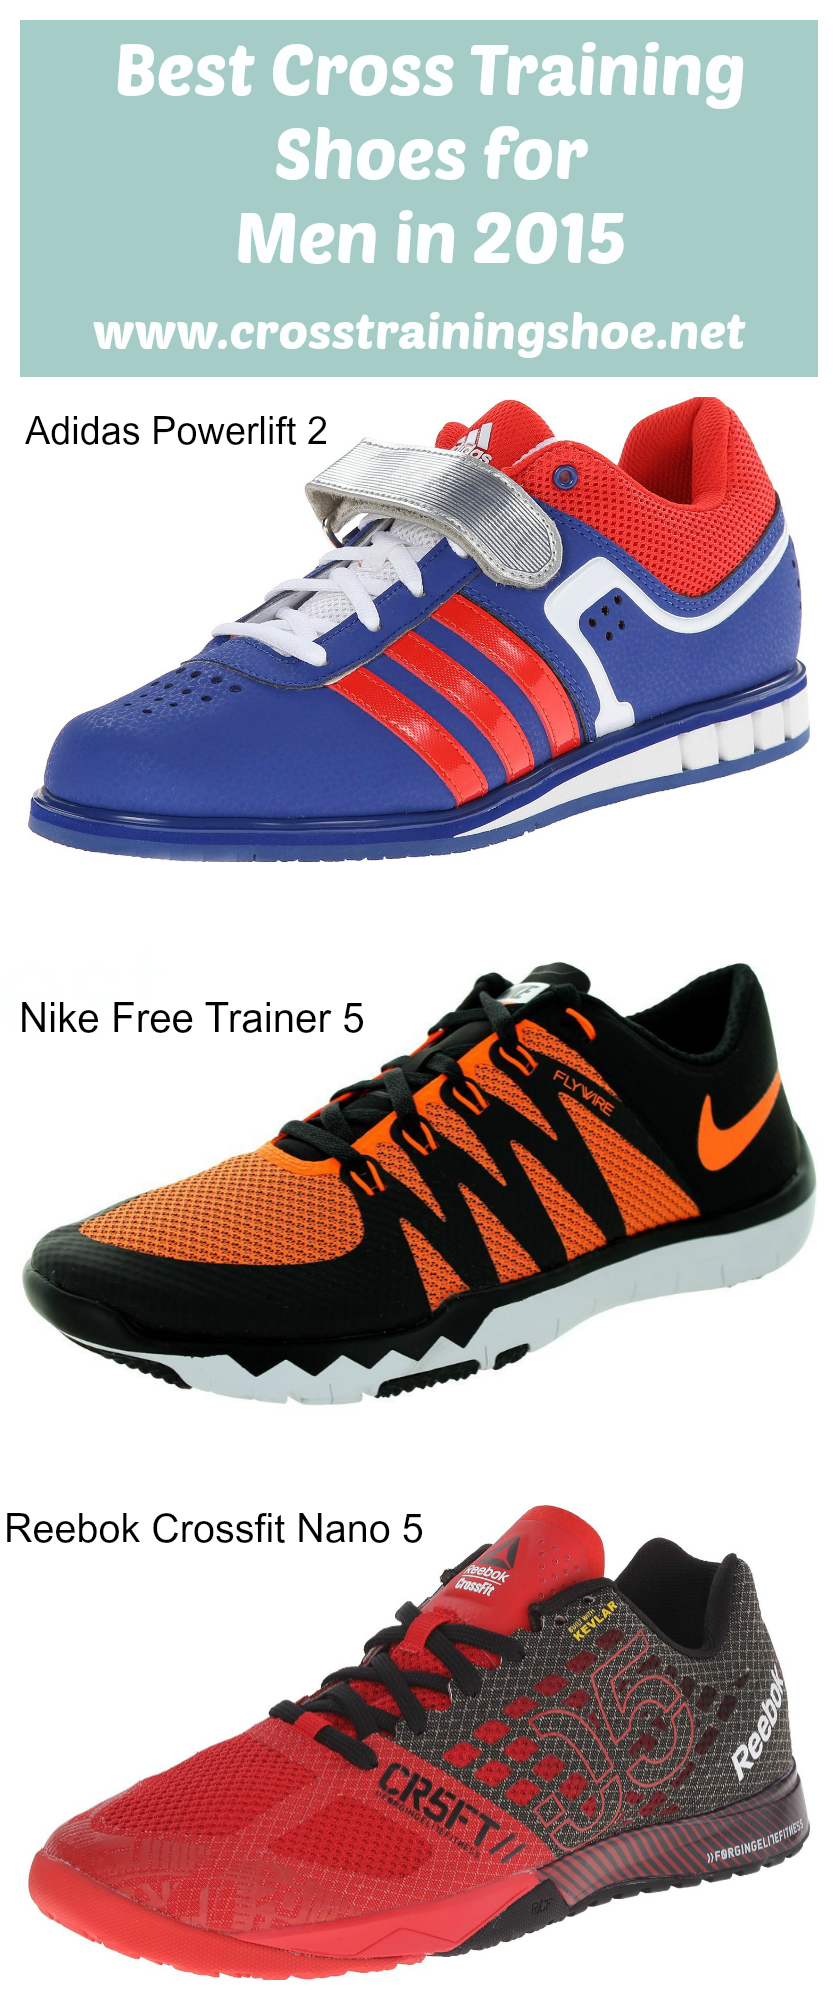 Best cross training shoes for men in 2015  19cdbff957d8